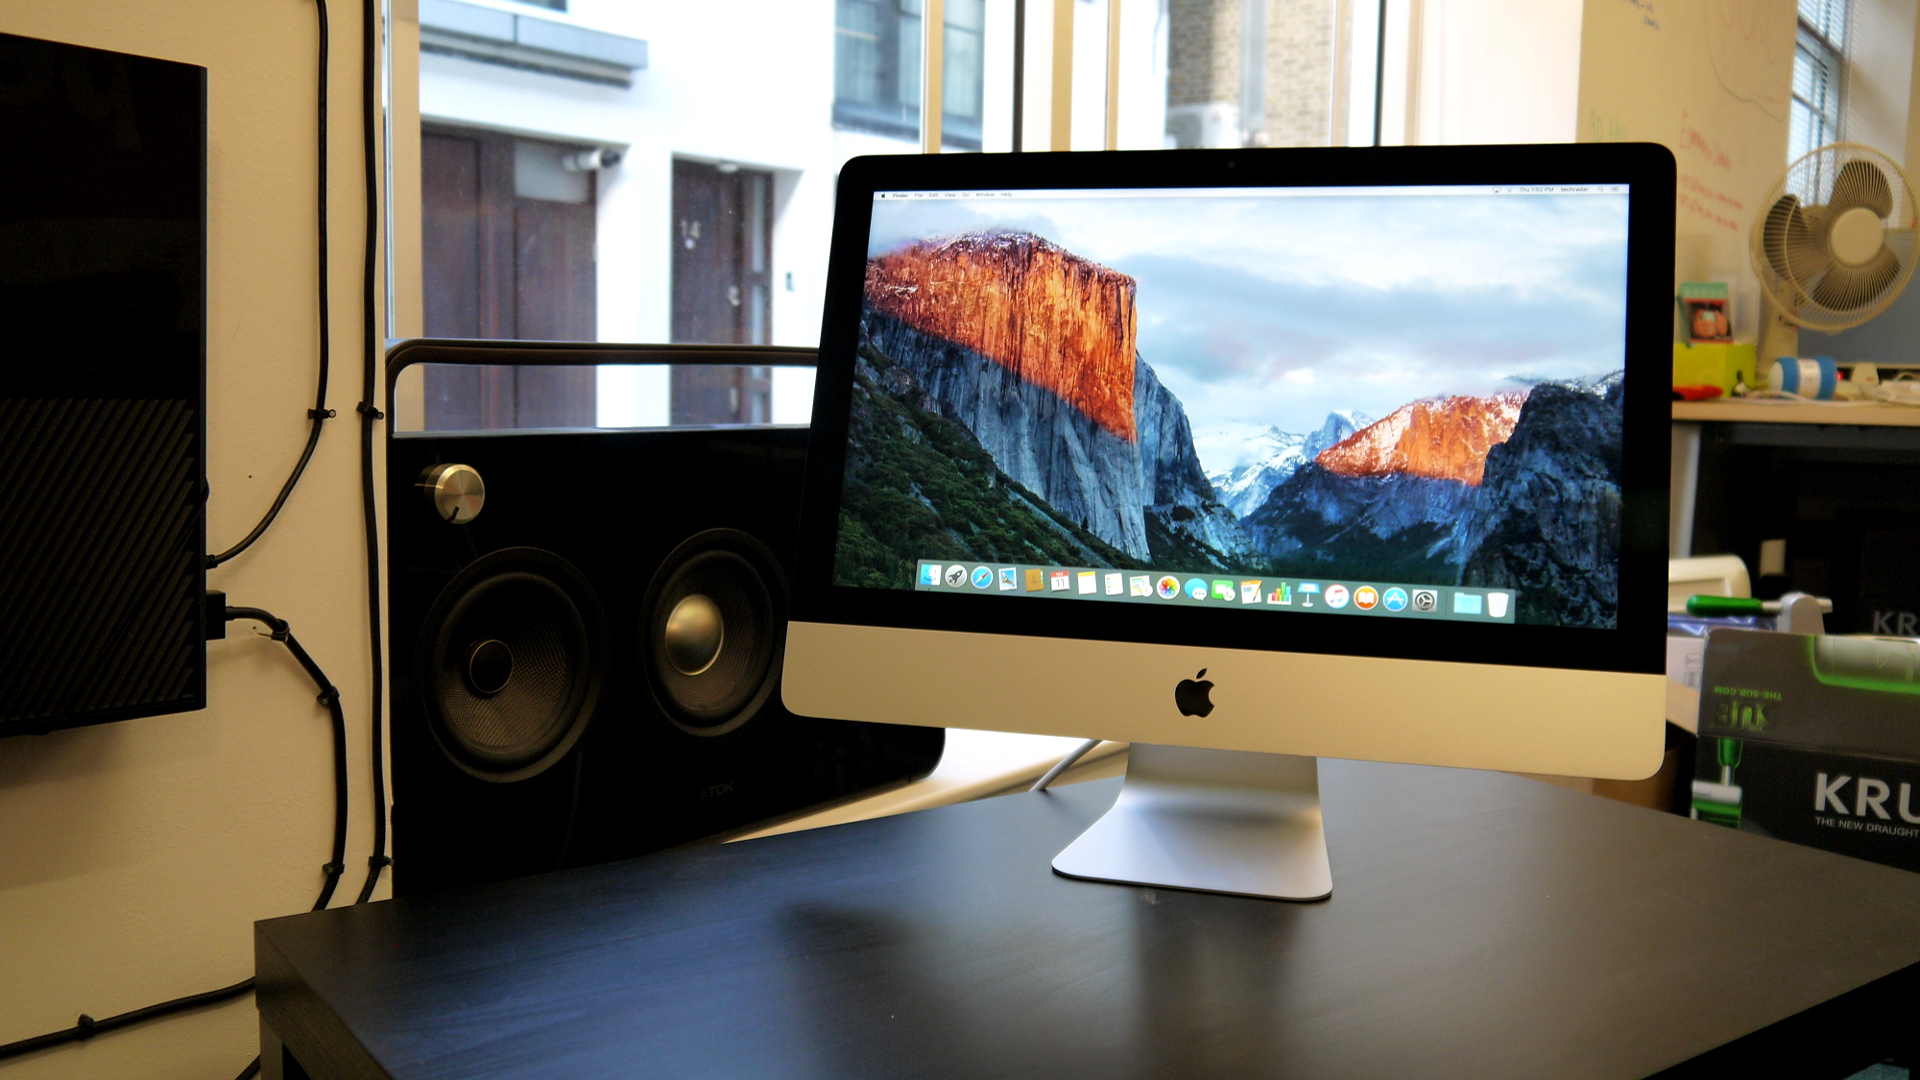 iMac 21.5 inch front